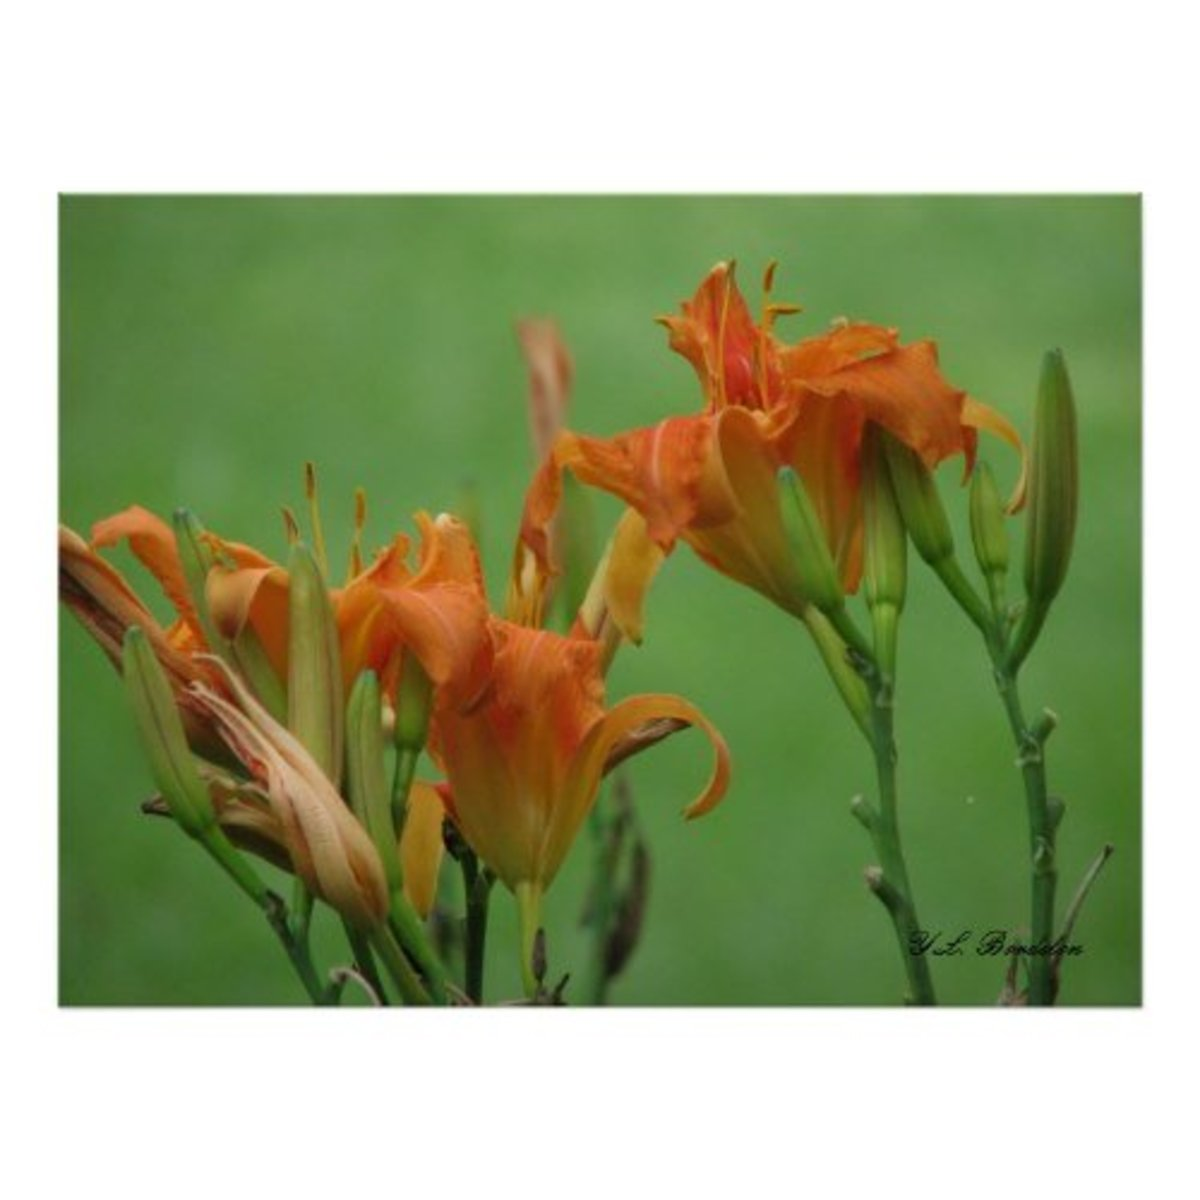 Daylily flowers are edible. The buds can be cook like green beans and the flowers stuffed, battered and fried.